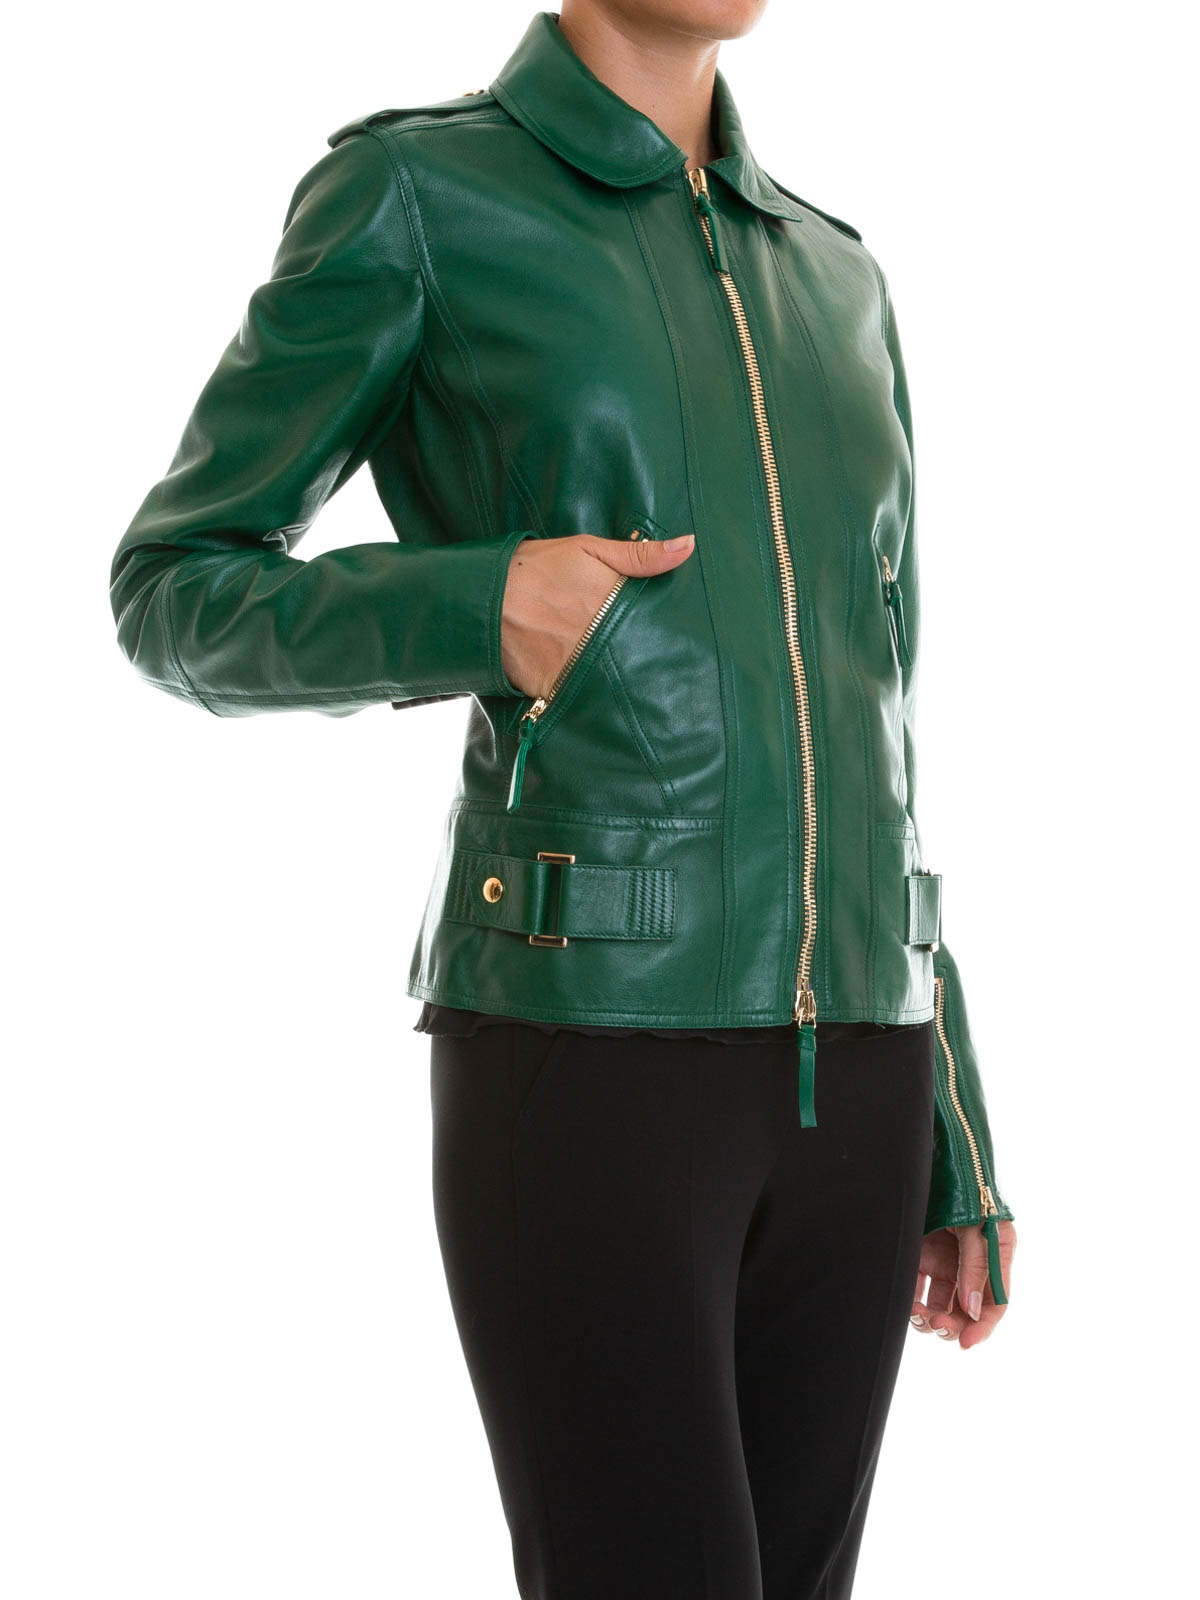 Roberto Cavalli amazing leather jacket,flattering fit. Sleeves arę pleated at the ends the embellished with gold stud. Gold Roberto Cavalli logo on the bottom right .